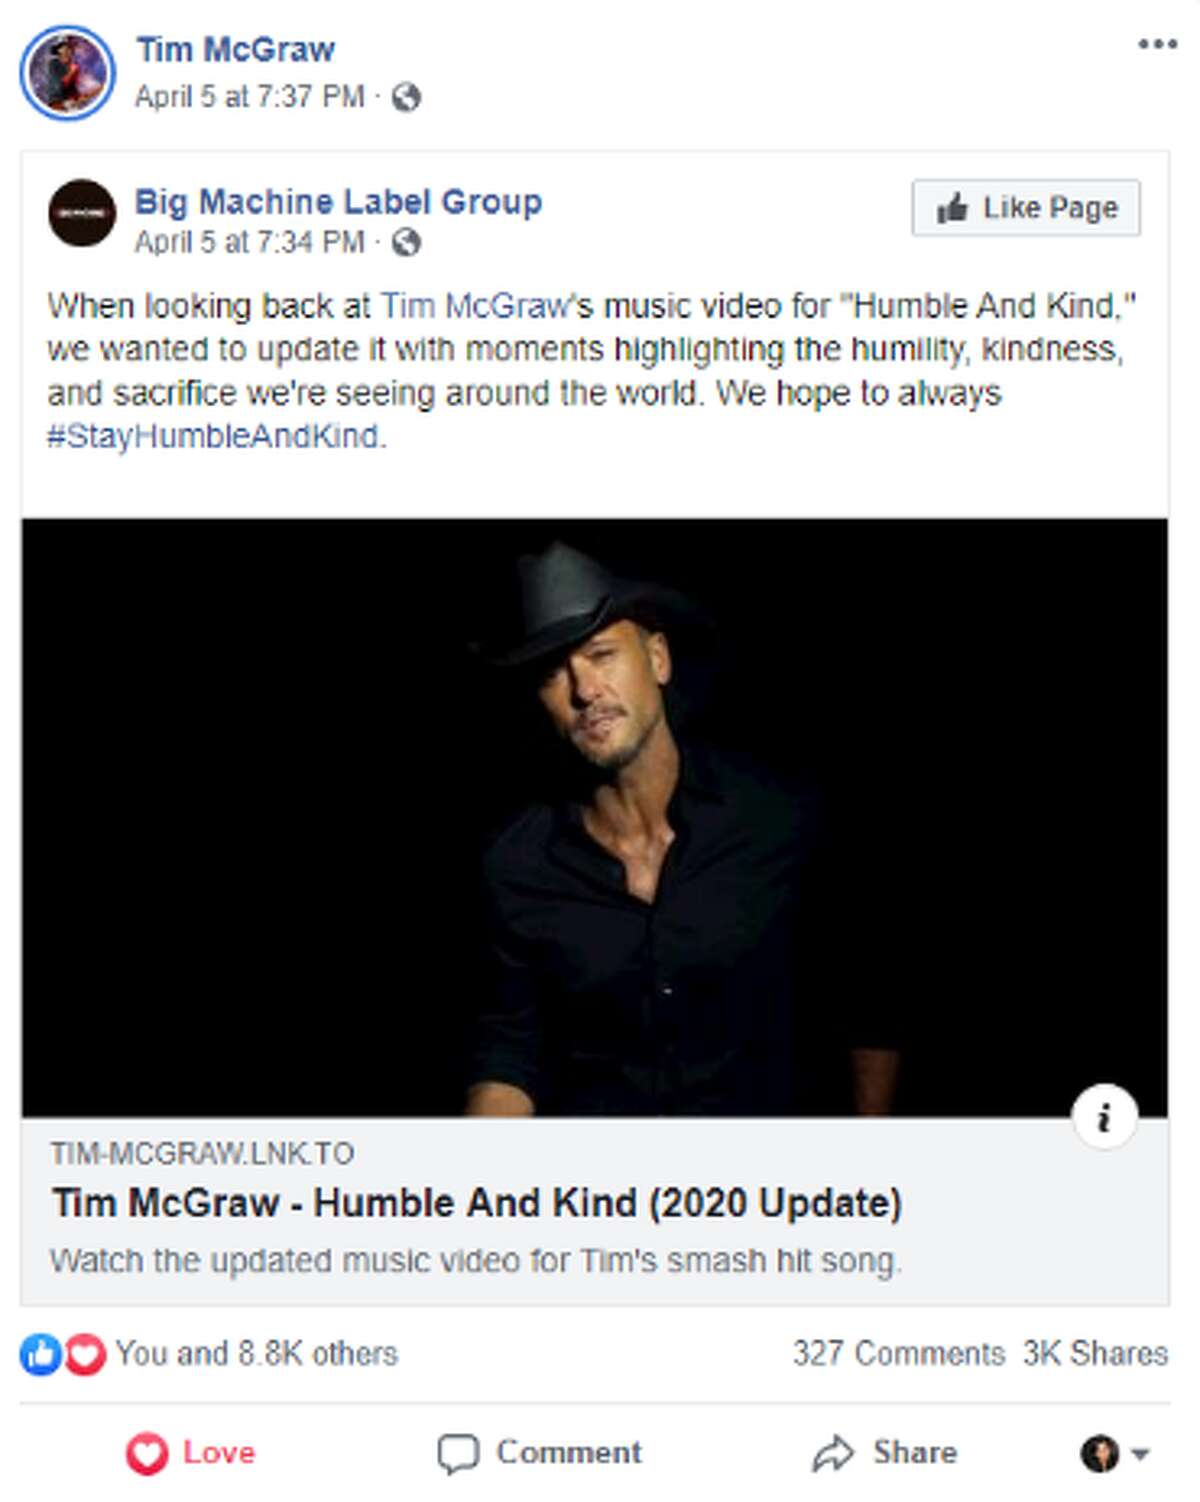 Tim McGraw's record label Big Machine Label Group recently updated the video to his hit song